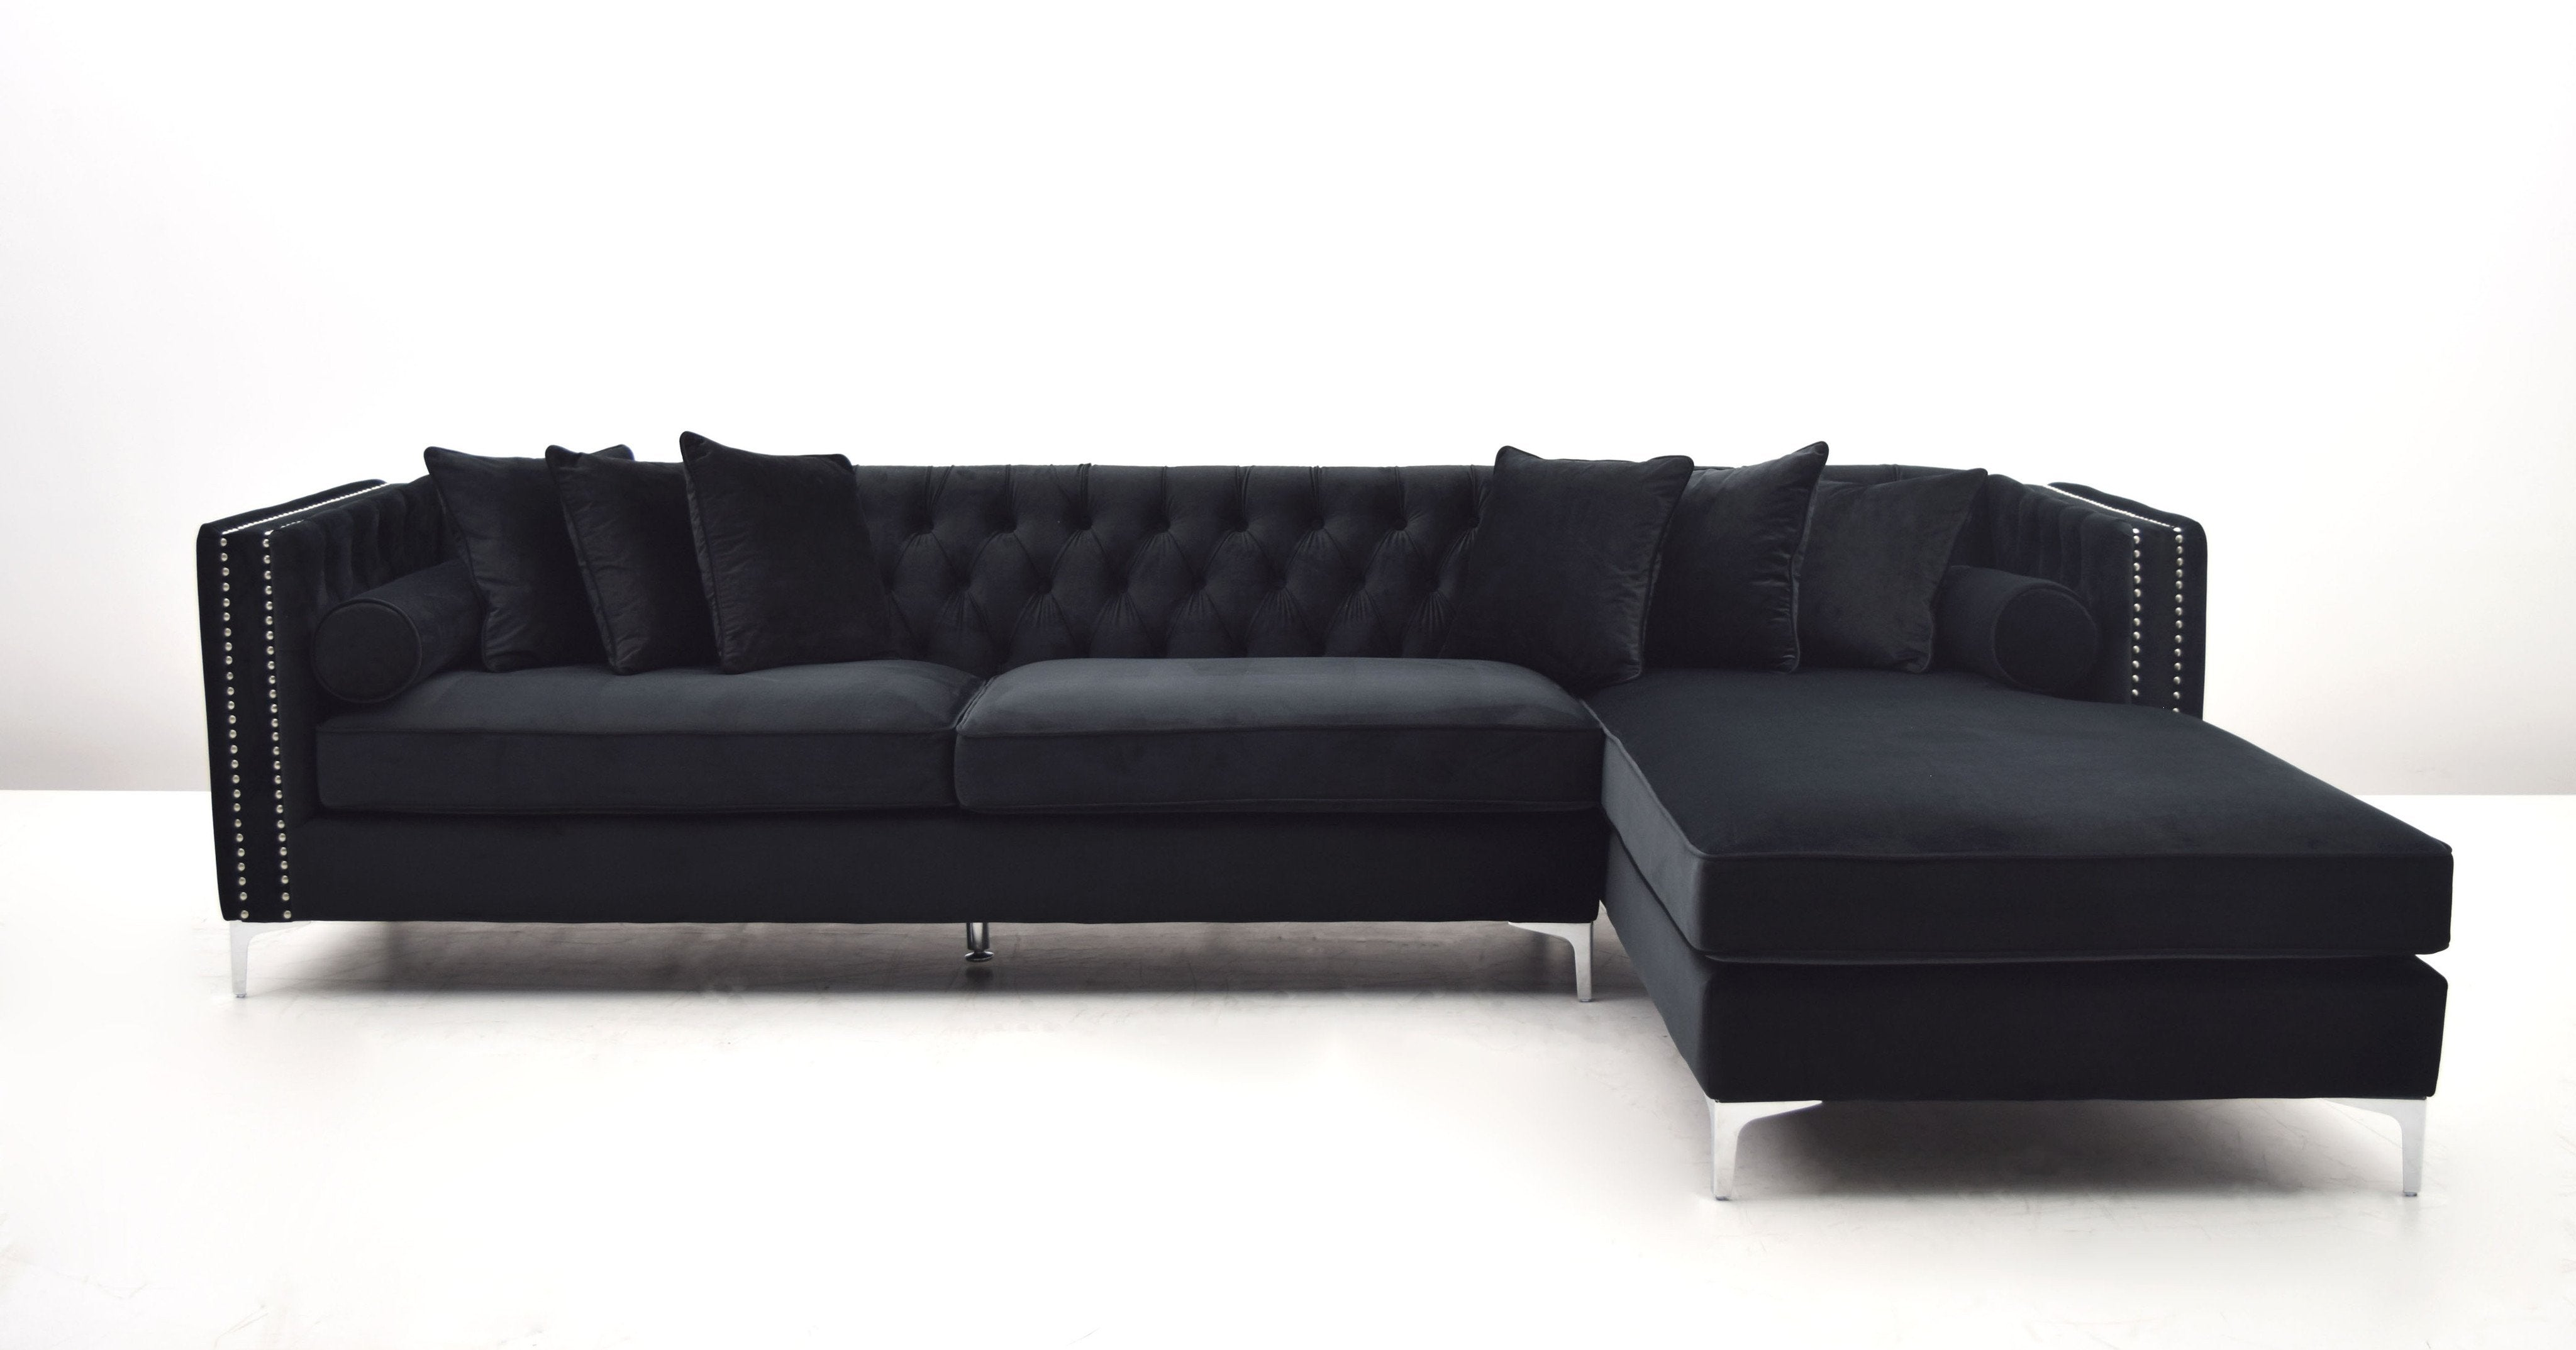 The Jaxon Corner Sofa